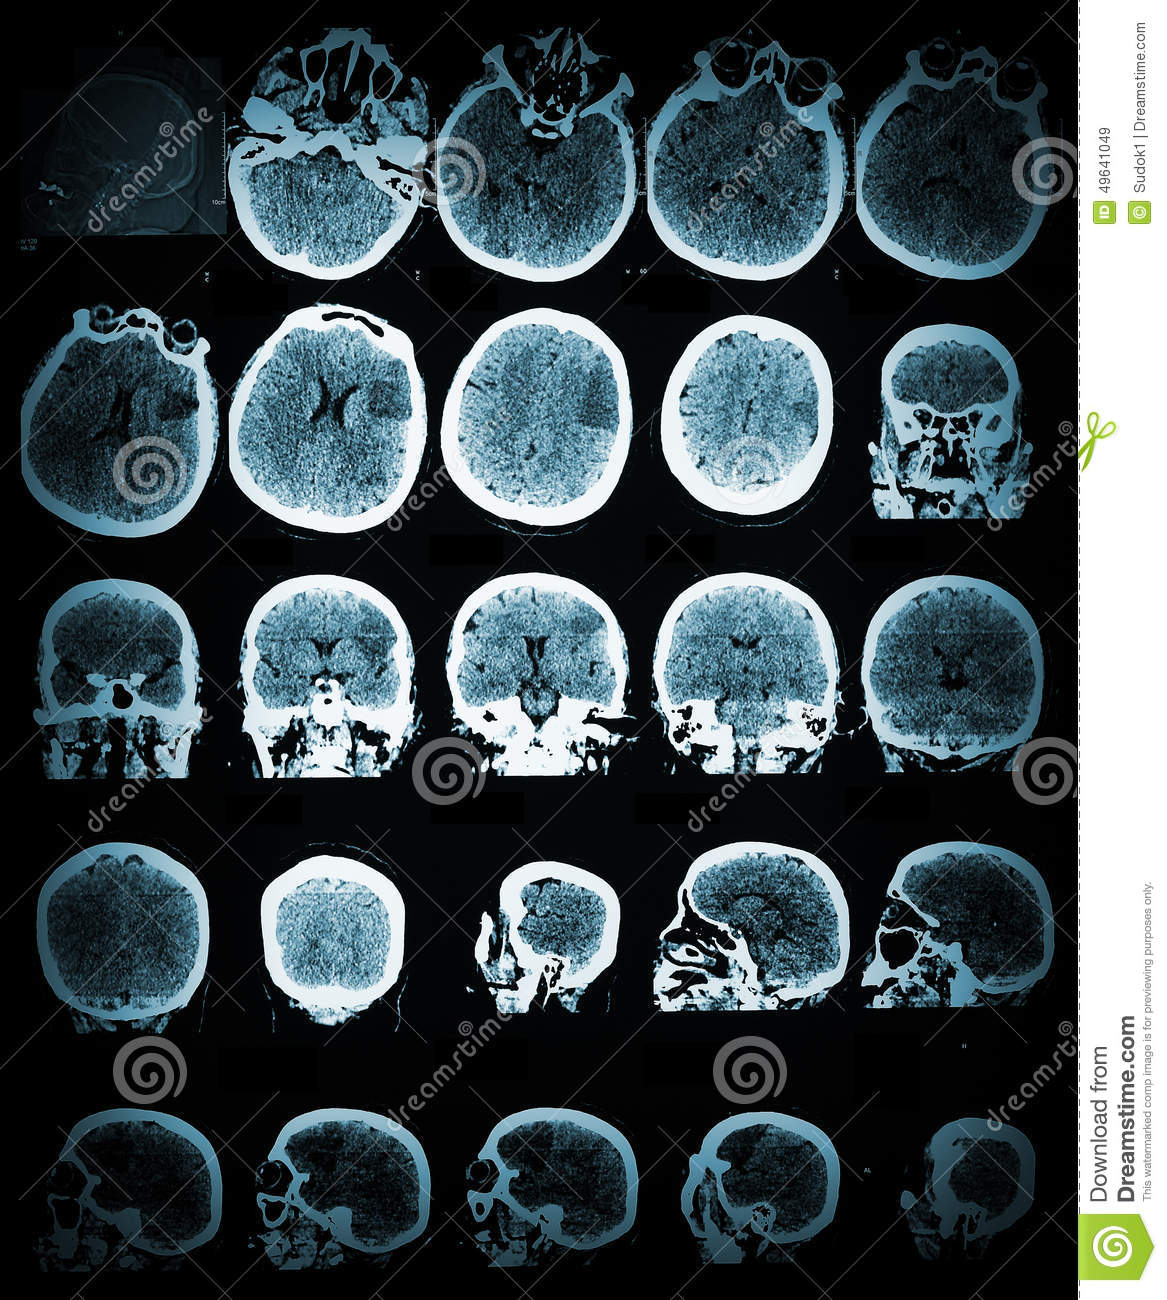 Healthcare and medical wallpaper with the CT